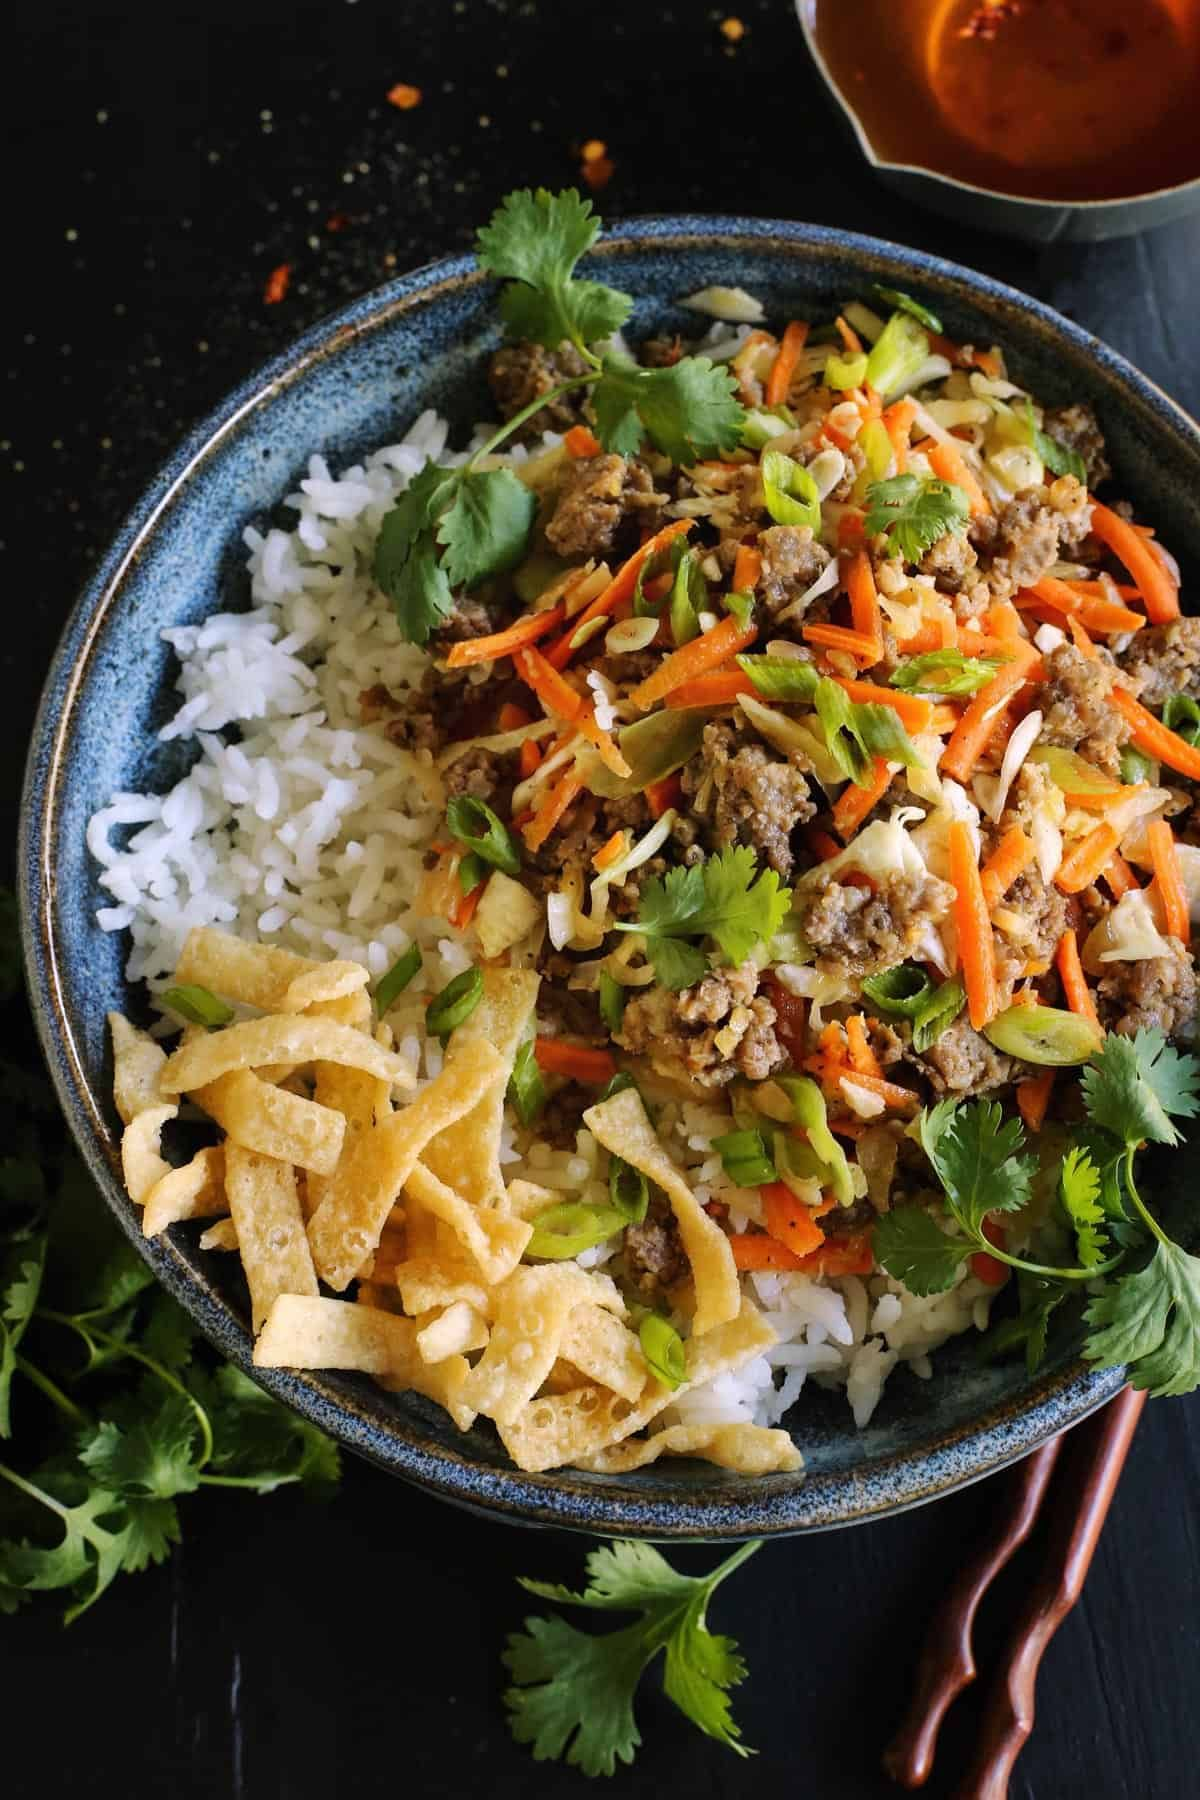 Egg Roll in a Bowl recipe from  An easy dish featuring egg roll flavors of ground pork cabbage and carrots Served with crispy wonton strips and a tasty Asian sauce